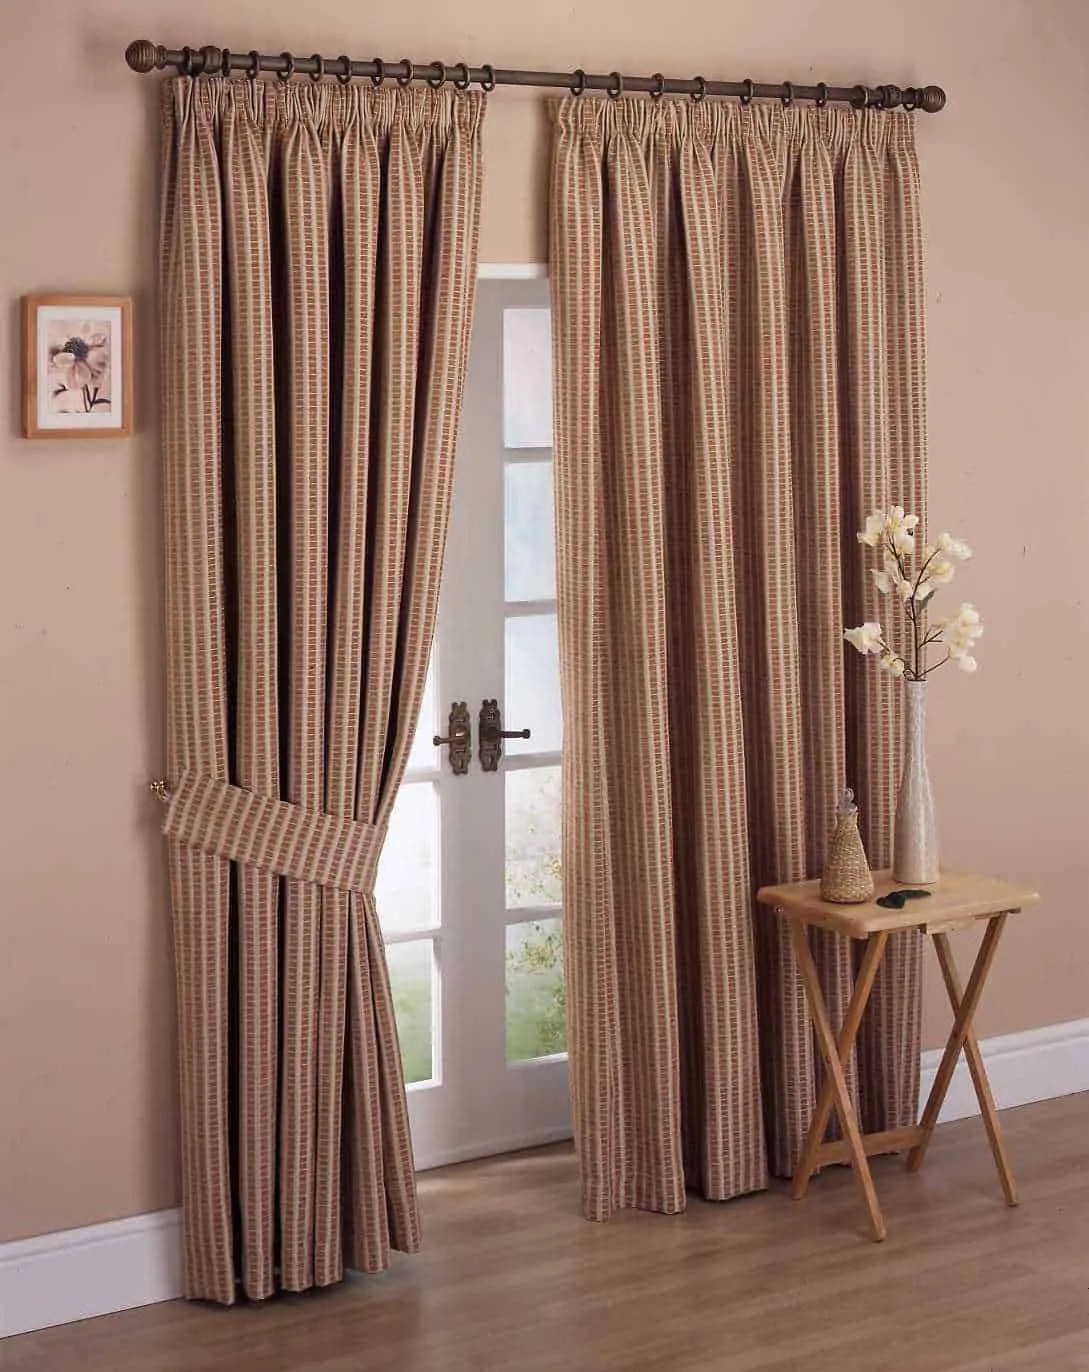 Curtains Ideas for an Outstanding House Decoration ... on Bedroom Curtain Ideas  id=37105